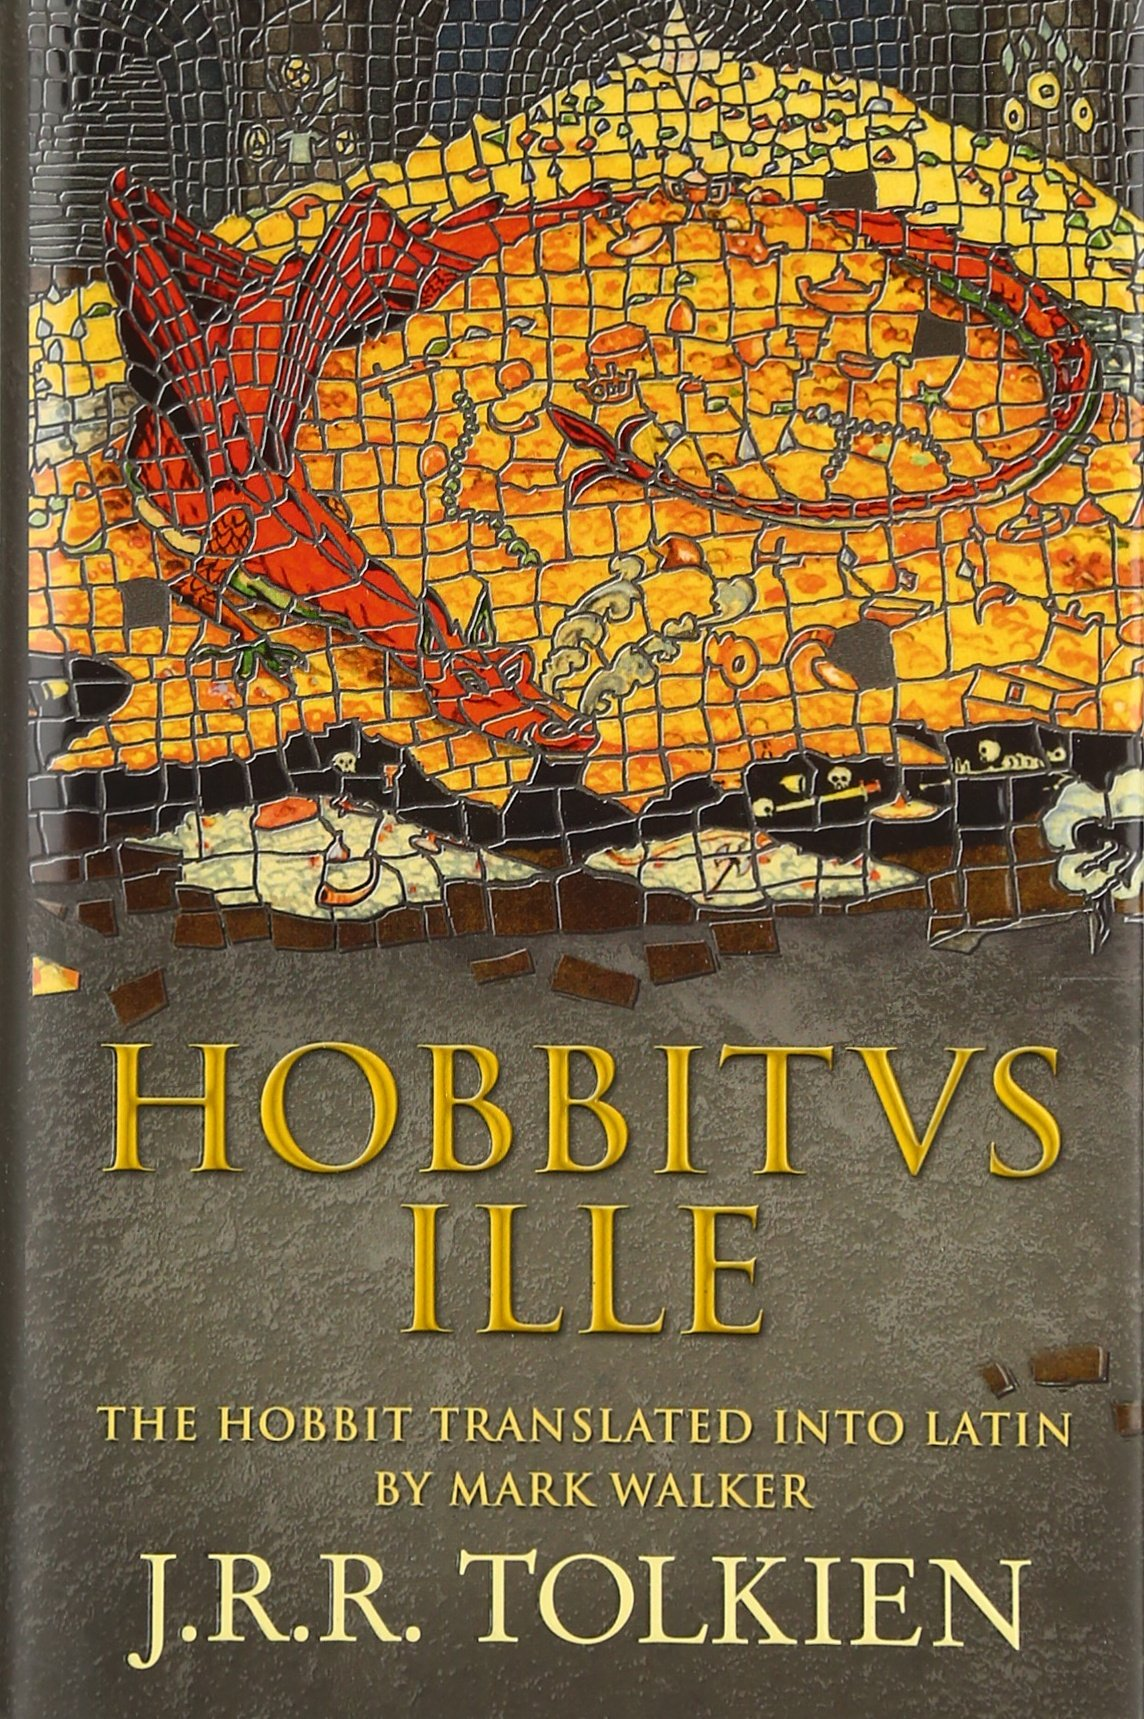 com hobbitus ille the latin hobbit  com hobbitus ille the latin hobbit 9780007445219 j r r tolkien mark walker books